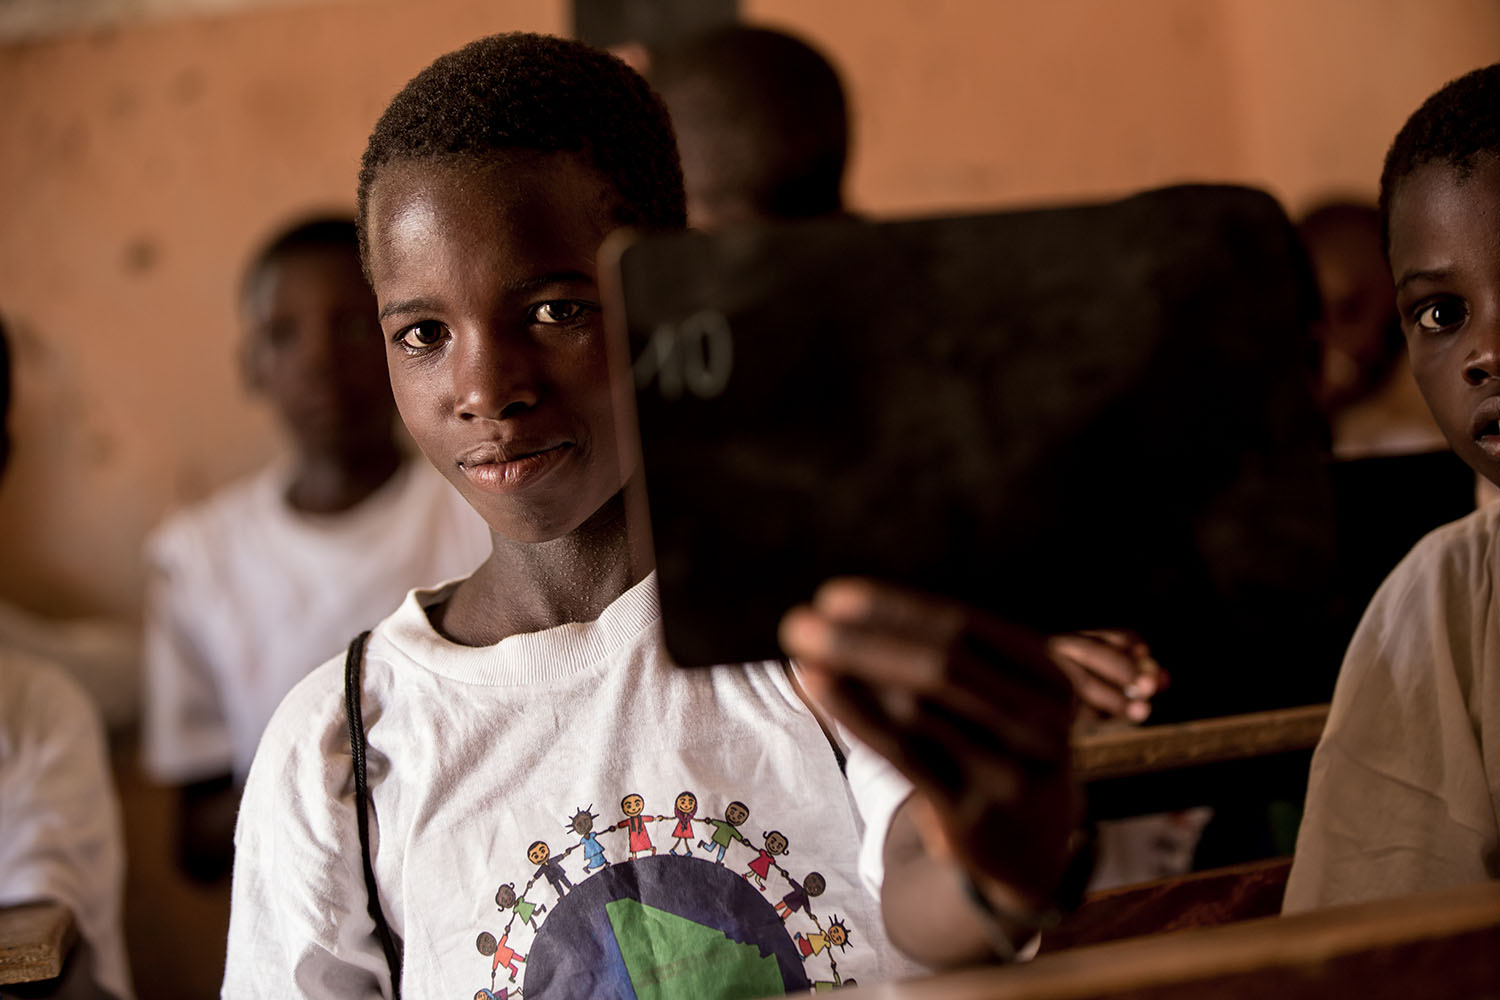 Fayçal Maiga, 11 yrs old, (RELEASED) engages in one of the UNICEF lead programs at the Accelerated Learning Center of Bourougoundye, Gao where ongoing conflicts in the northern regions of Mali continue to have devastating effects education. UNICEF suppor